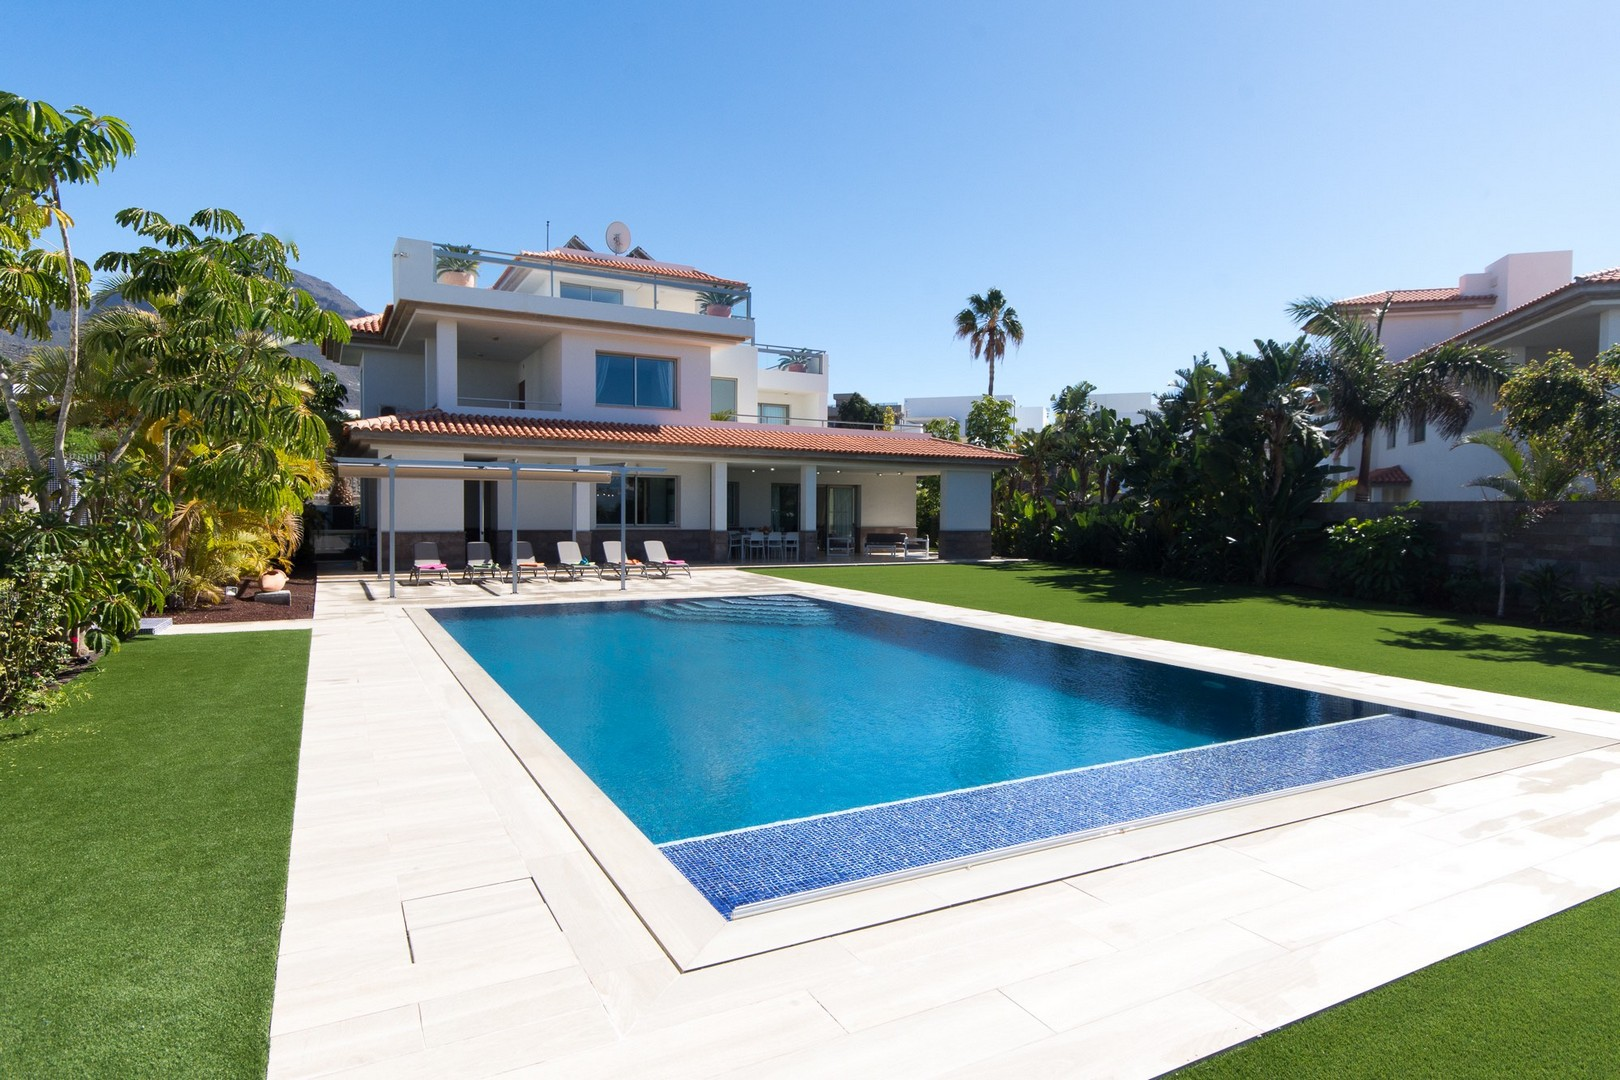 Holidays Villas Luxury Holiday Villas To Rent In Tenerife Azure Holidays